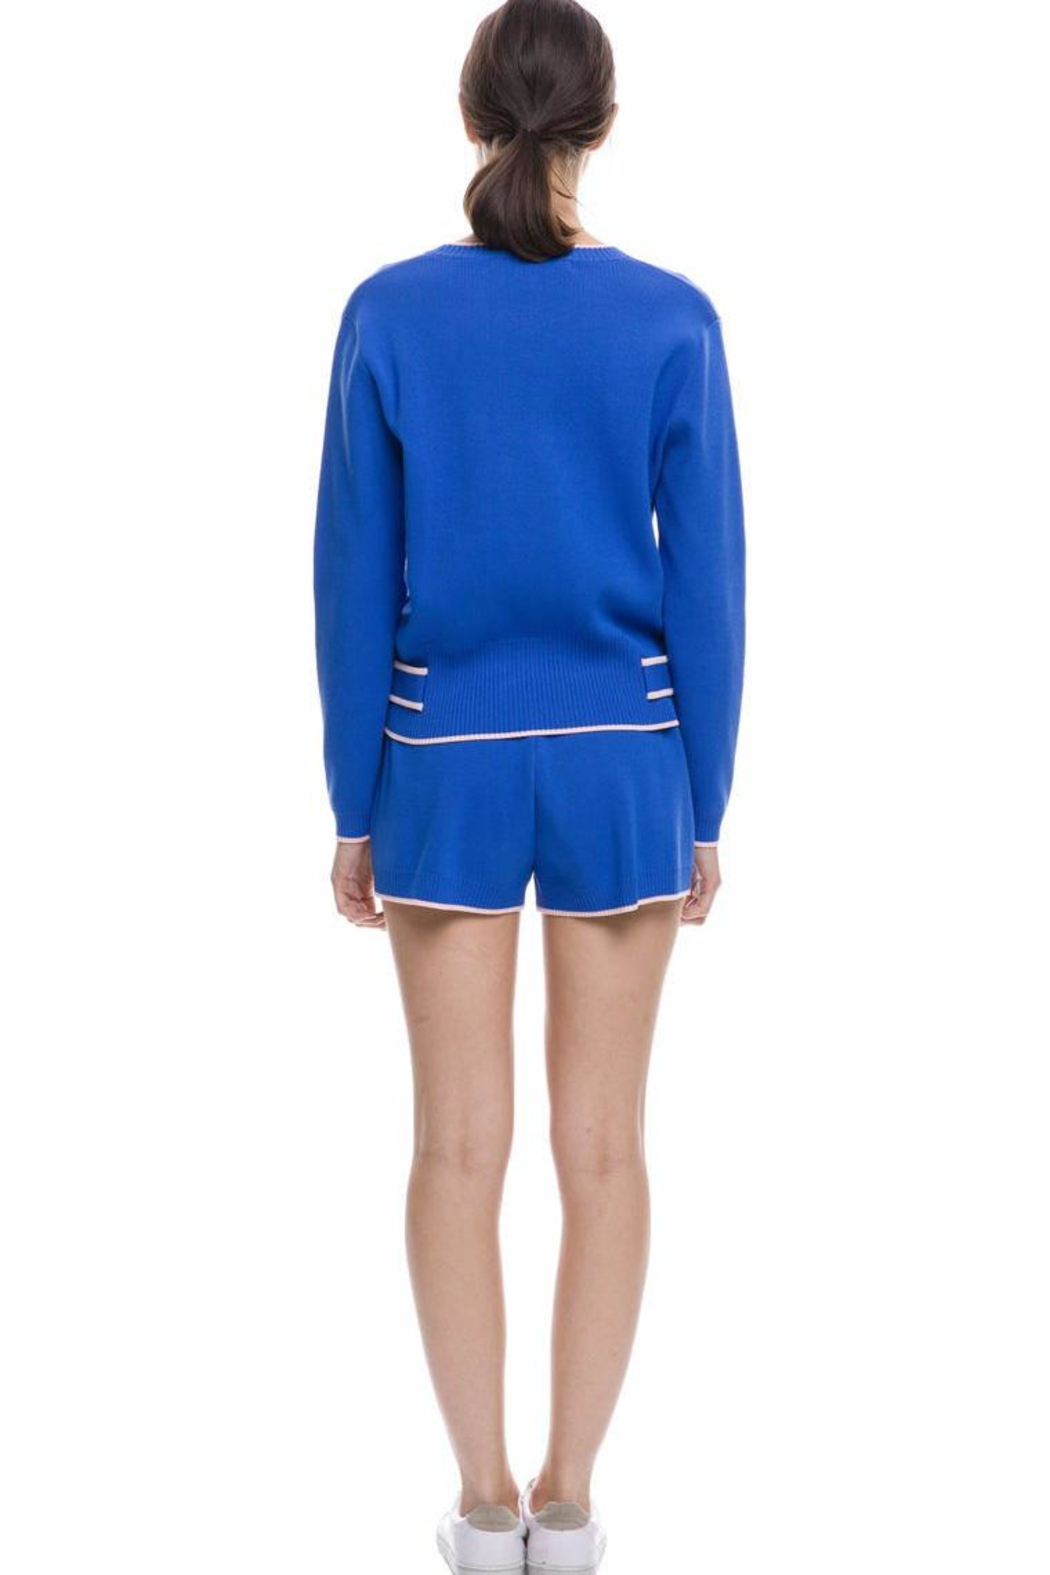 English Factory Blue Knit Top - Front Full Image